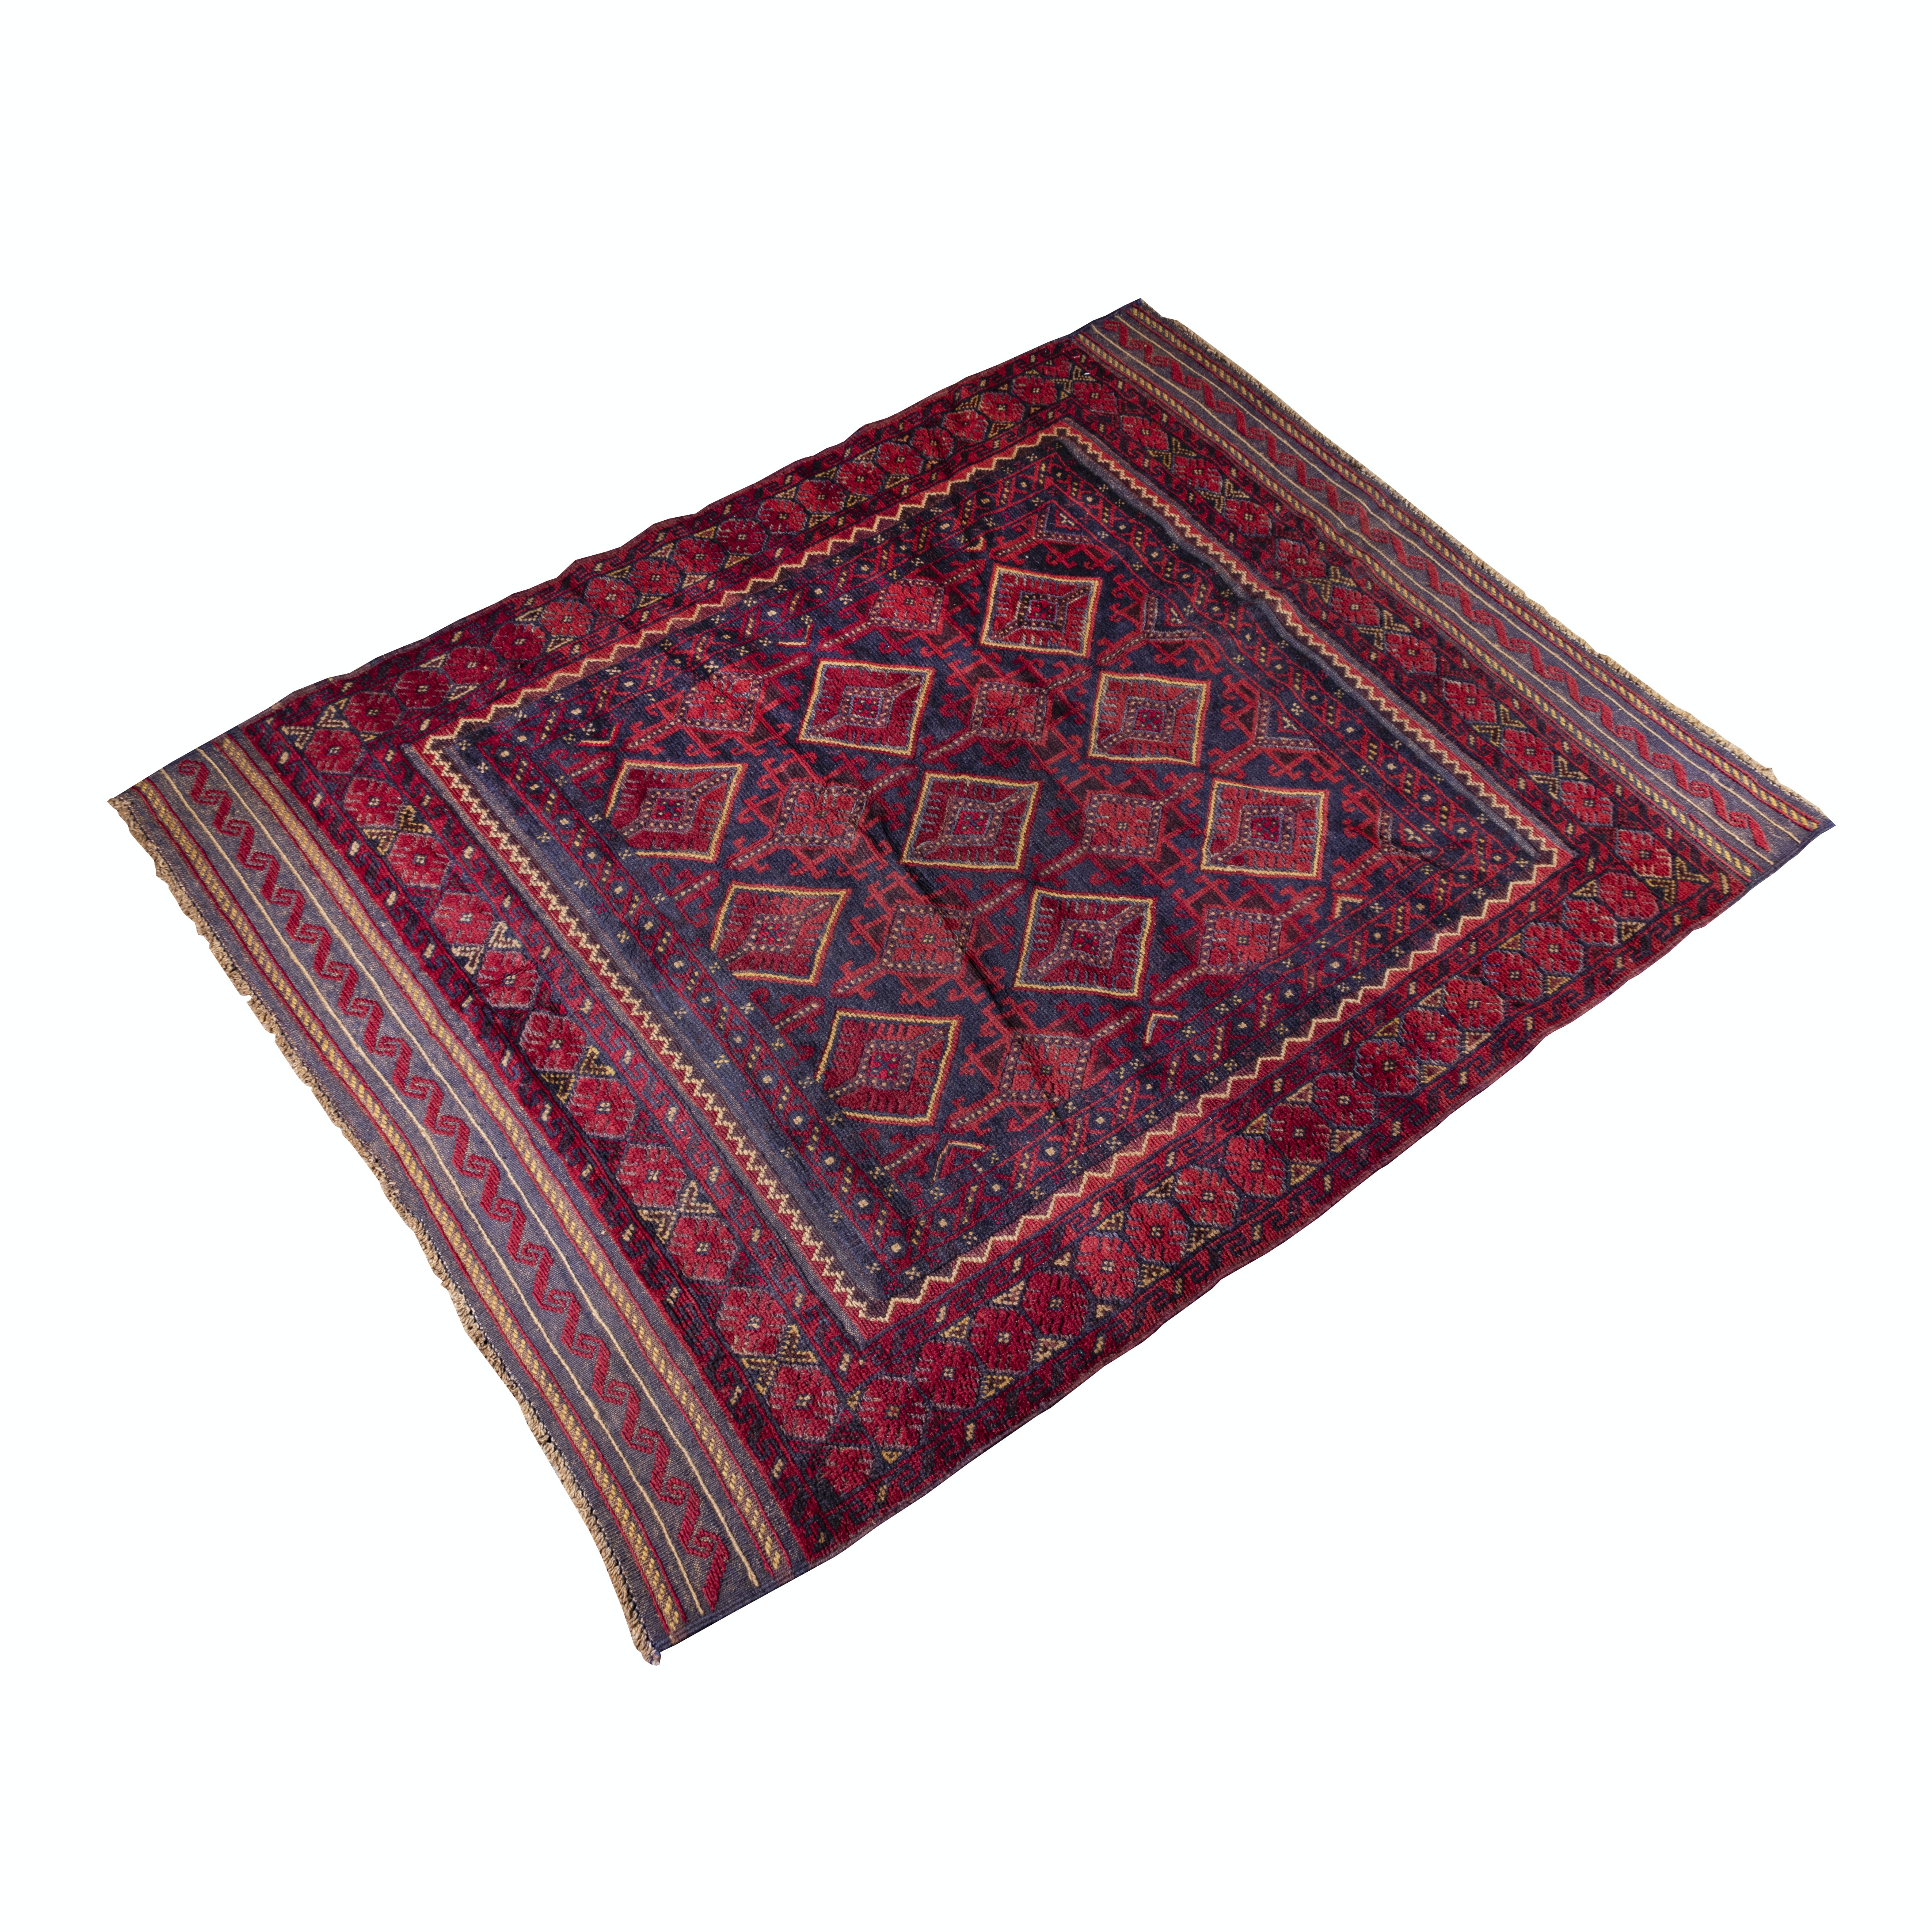 Hand-Knotted and Embroidered Baluch Mashwani Wool Rug